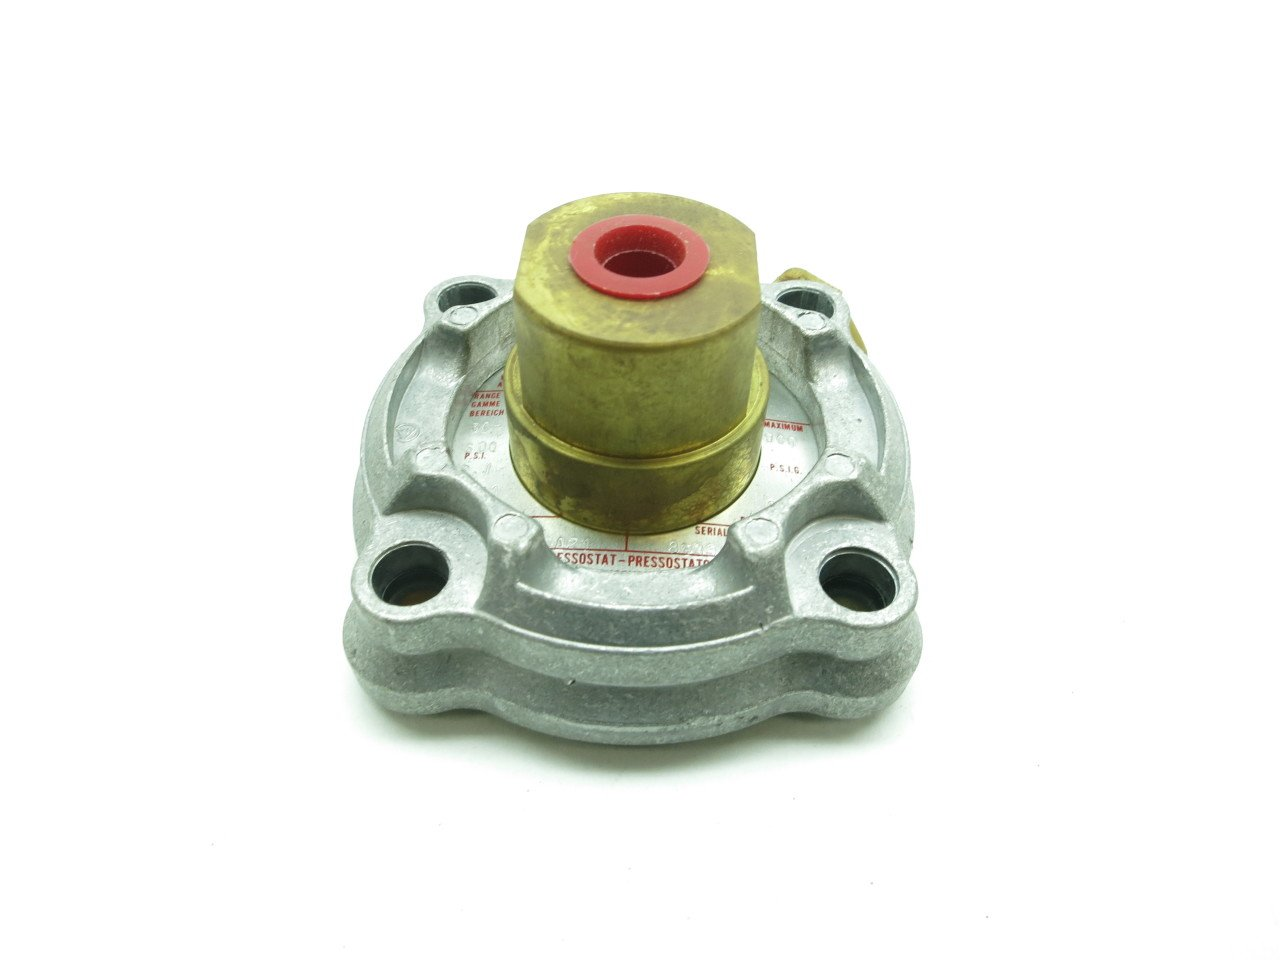 ASCO TK10A21 TRI-Point Pressure Transducer 30-600PSI D592043: Amazon.com: Industrial & Scientific